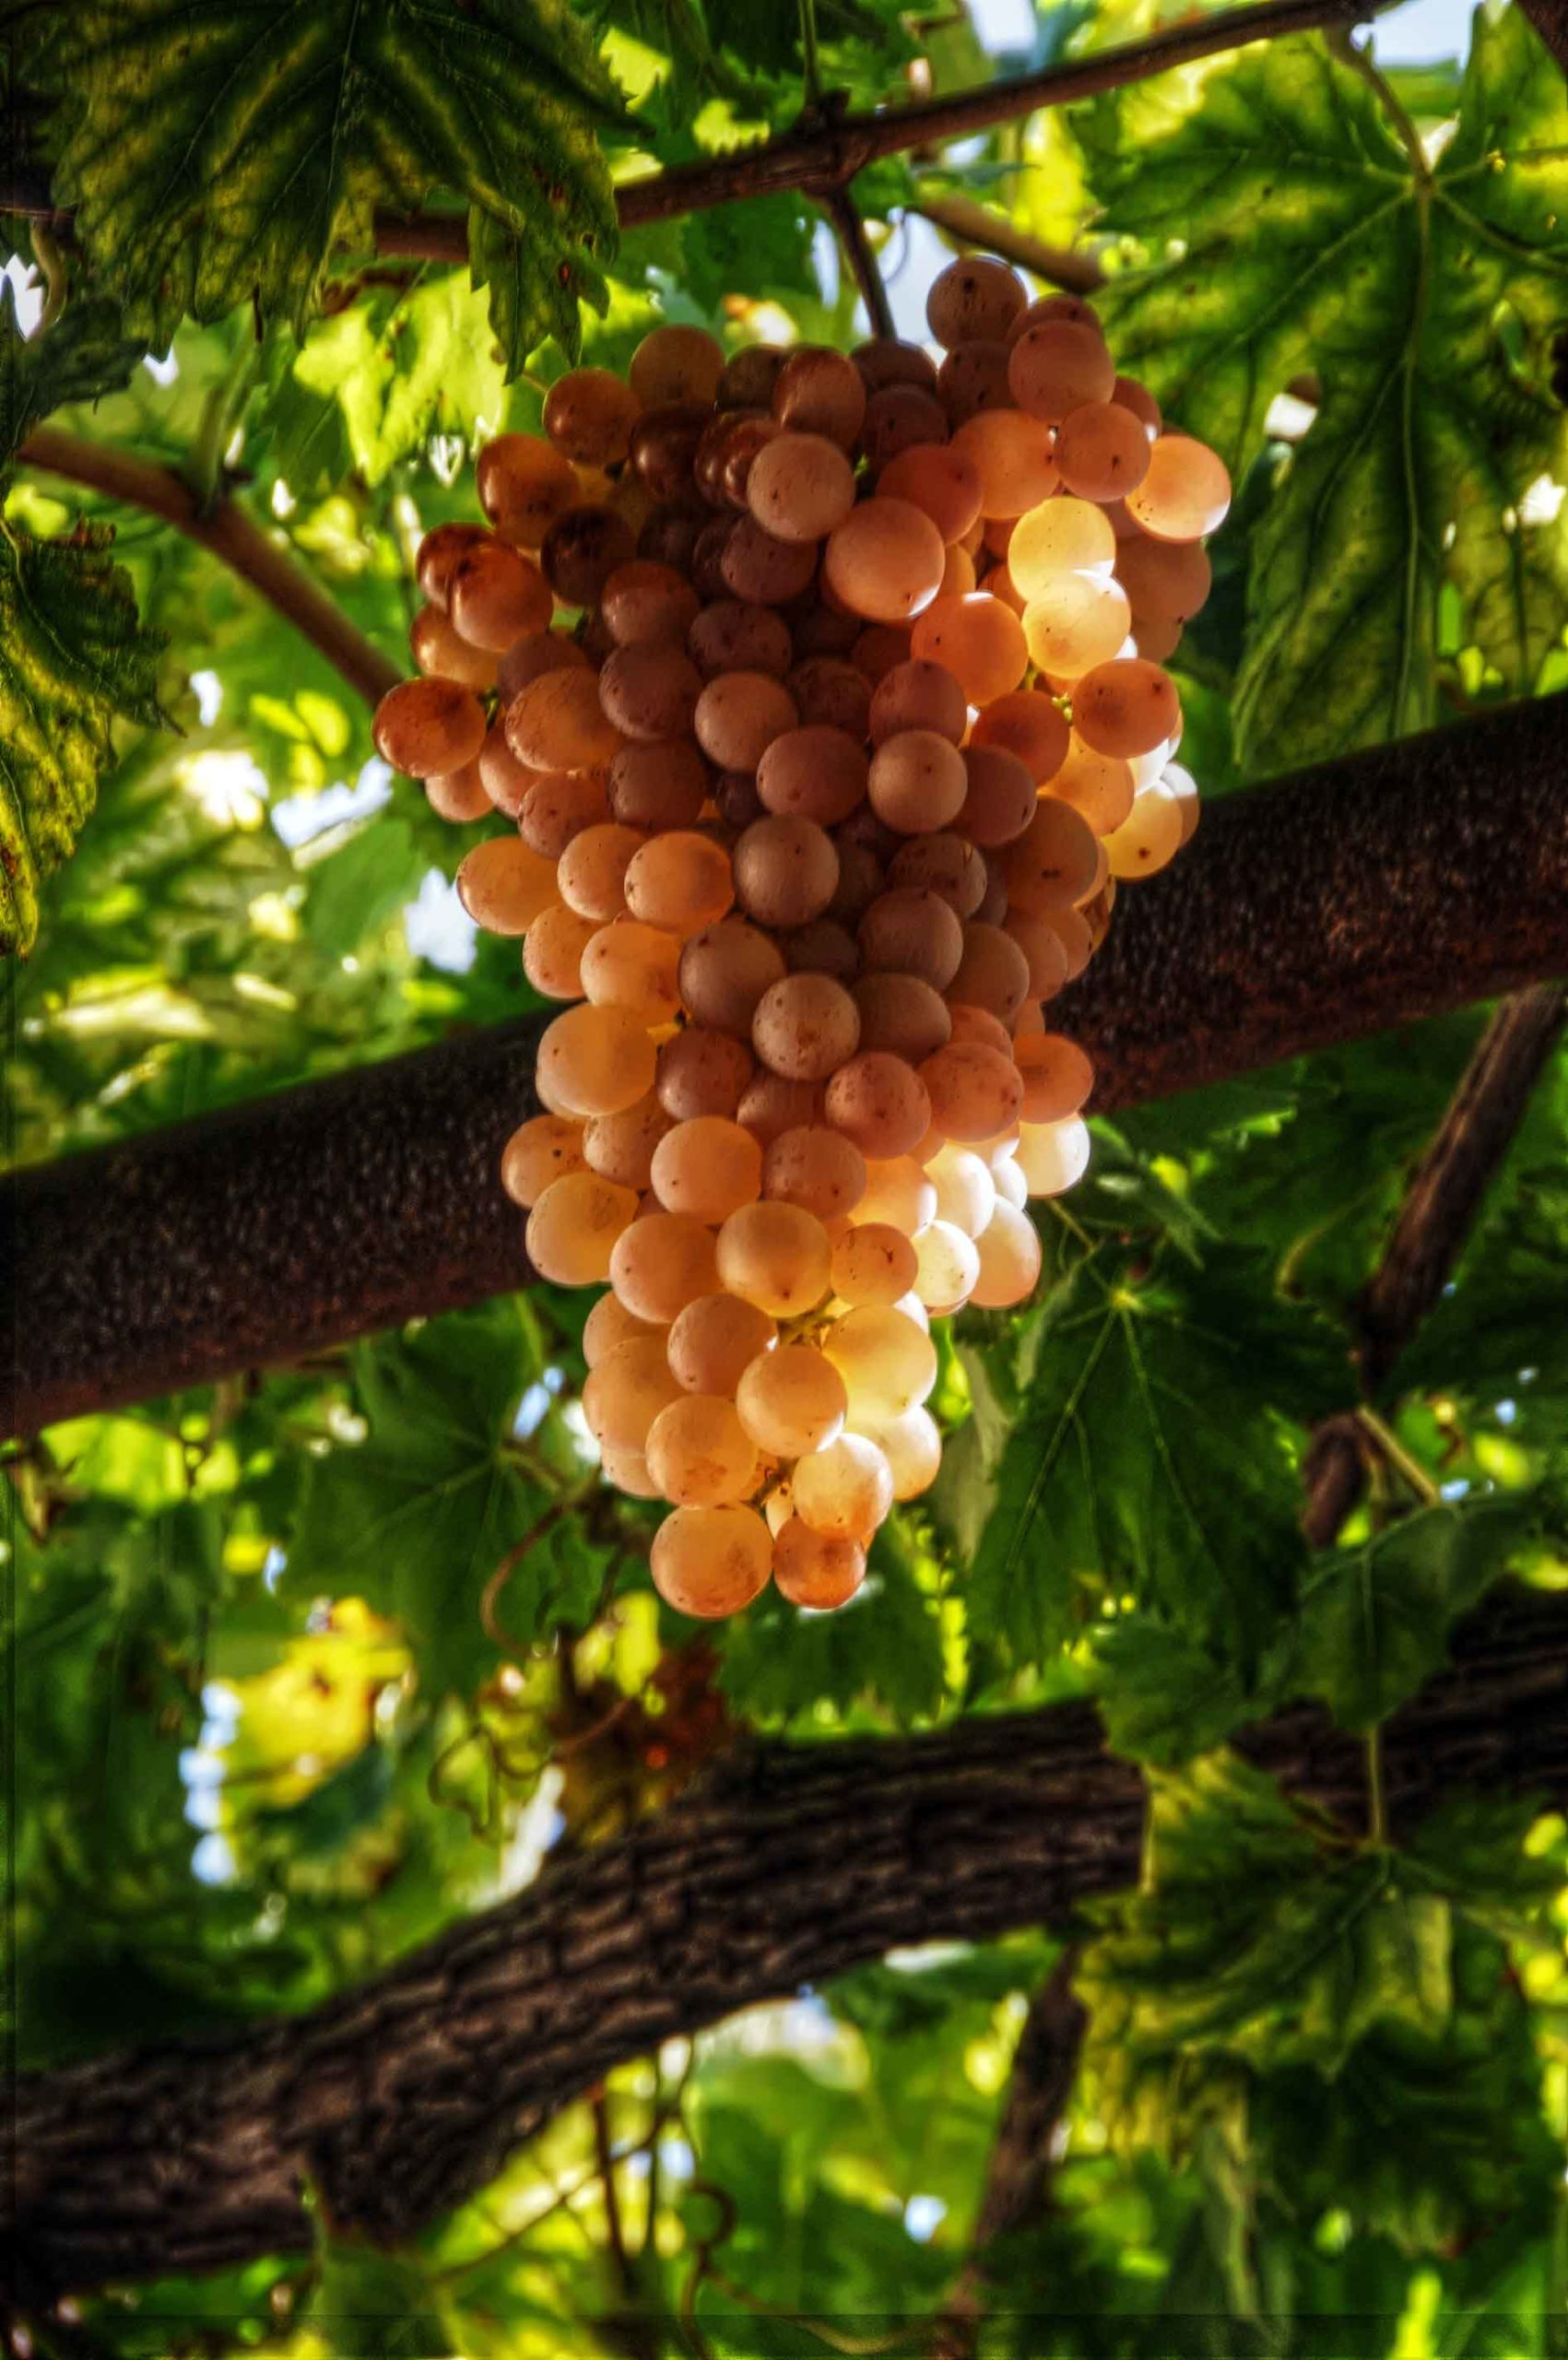 Canva---Grapes-of-Crete